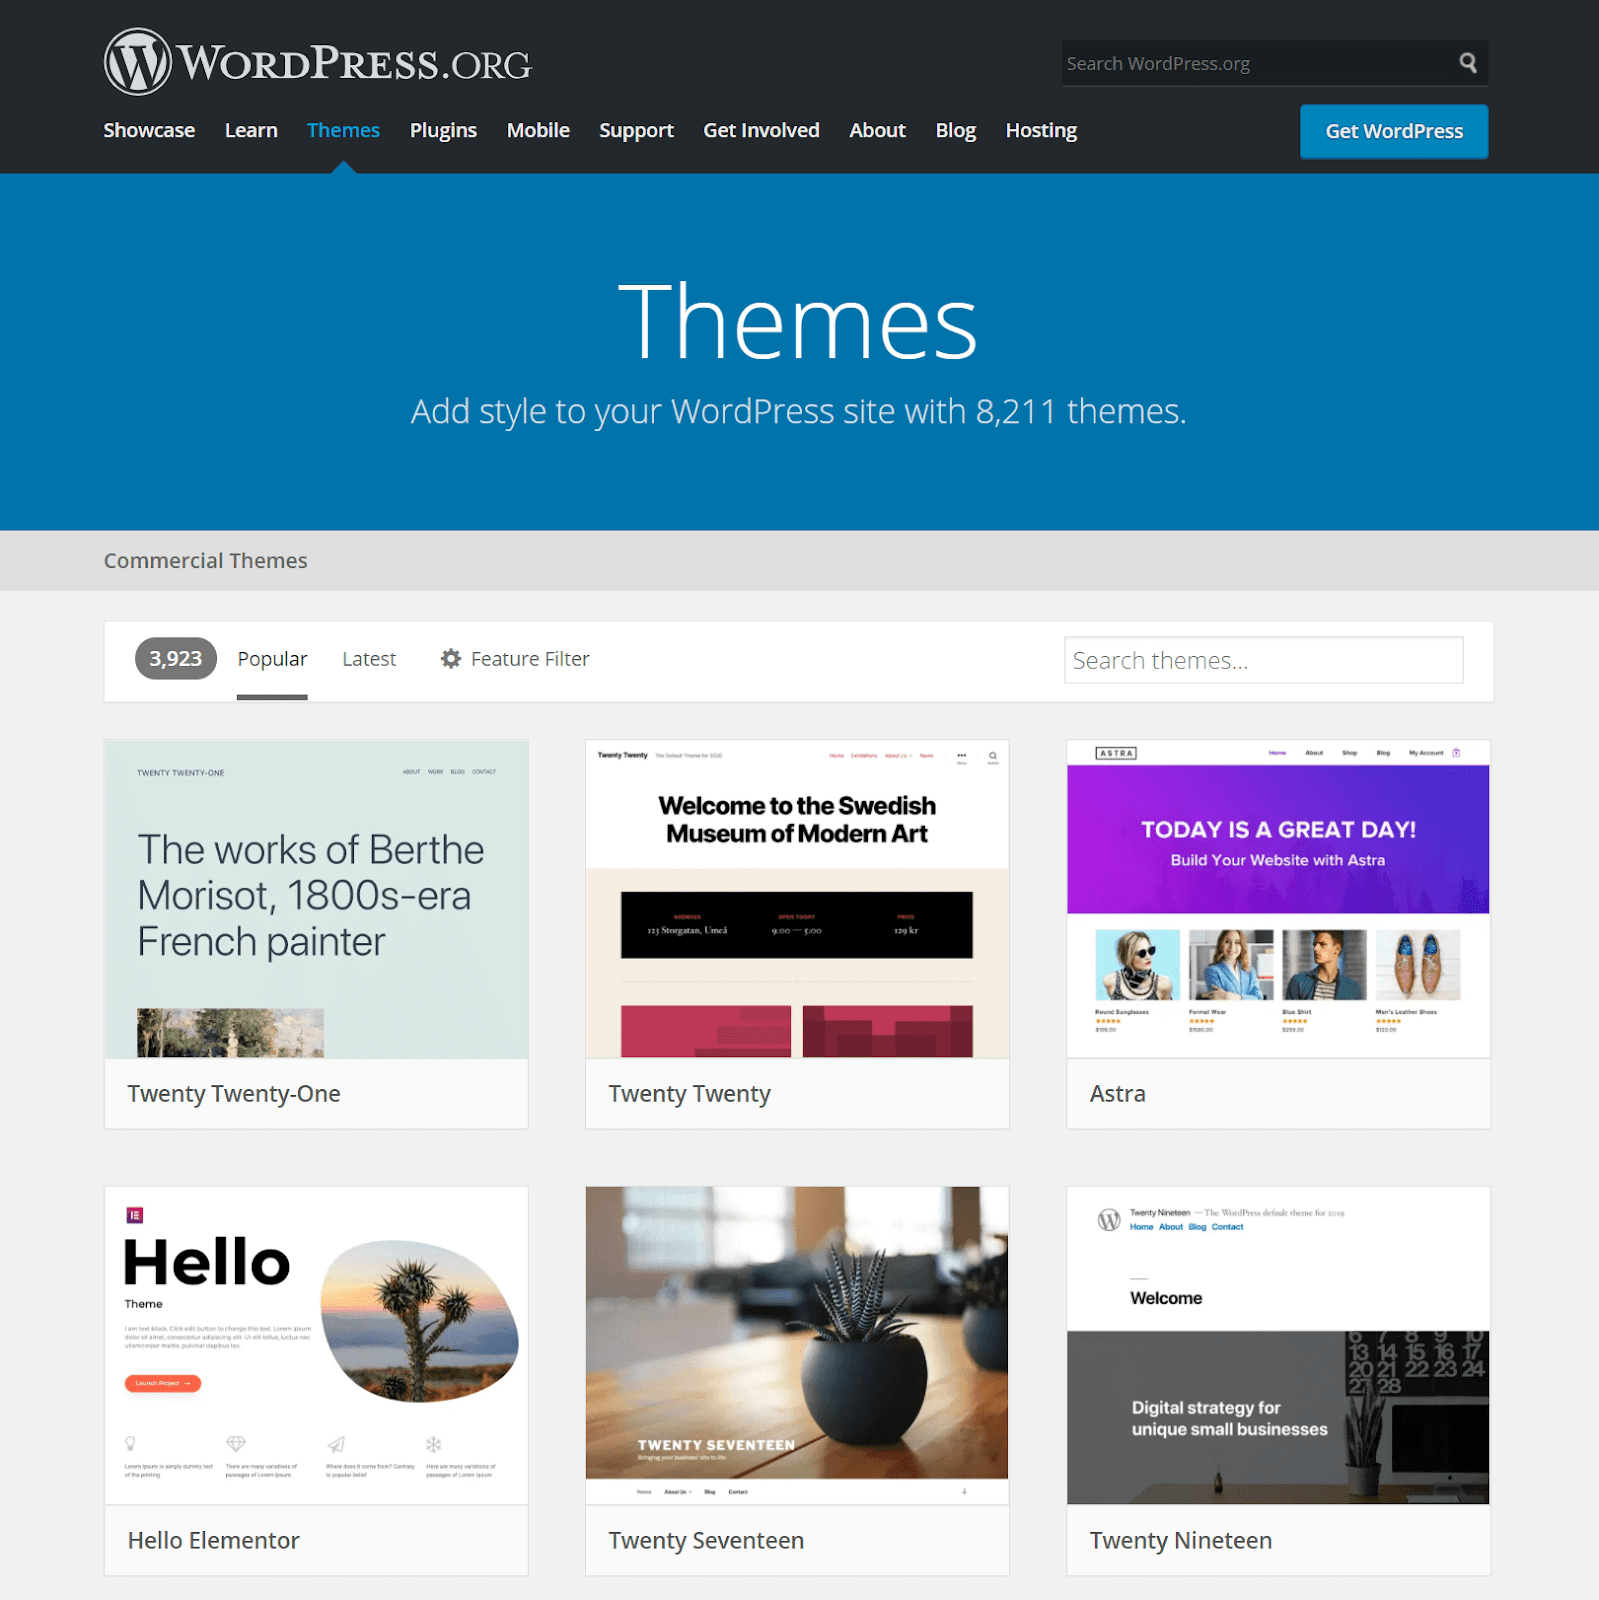 An image of the WordPress Theme Directory homepage.